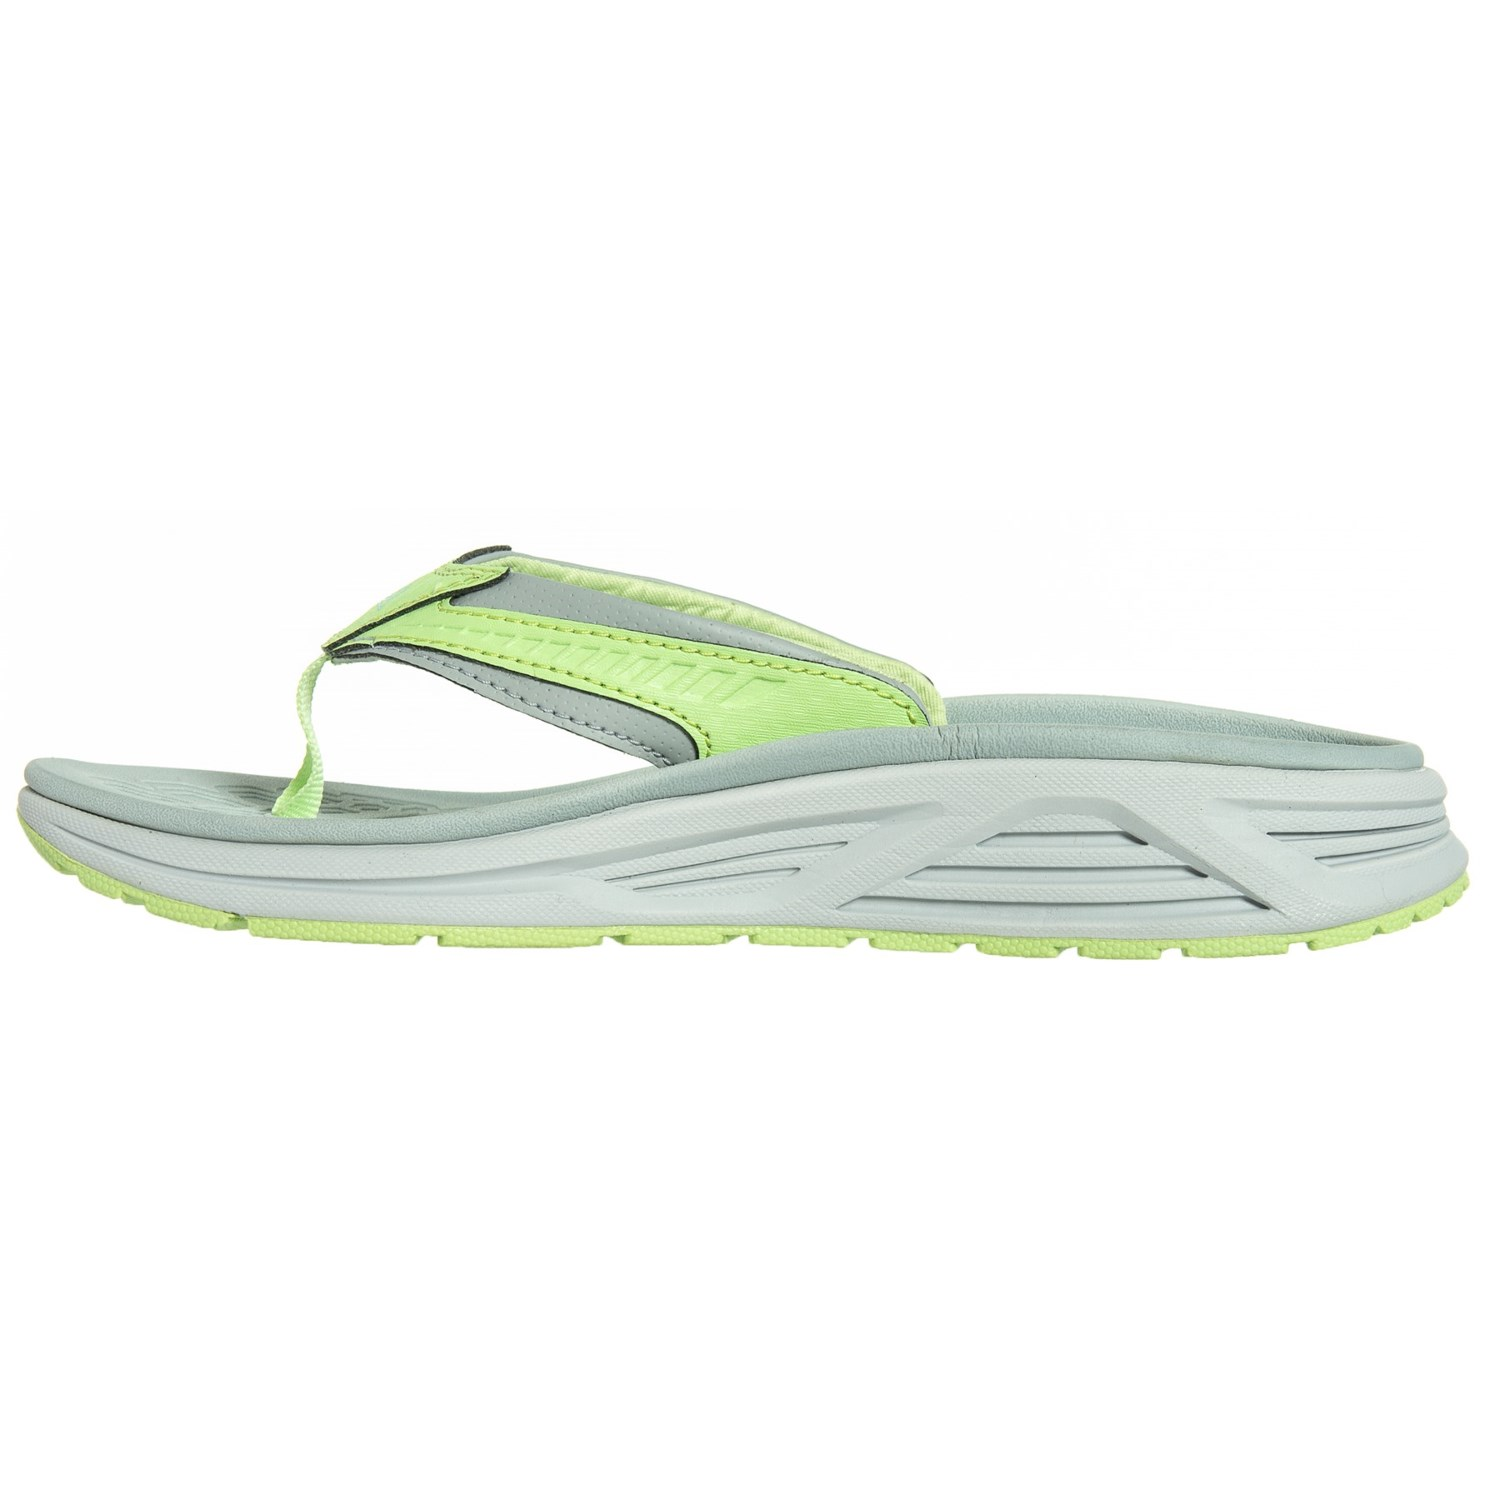 e86df349af4c Montrail Molokini III Flip-Flops (For Women) - Save 58%